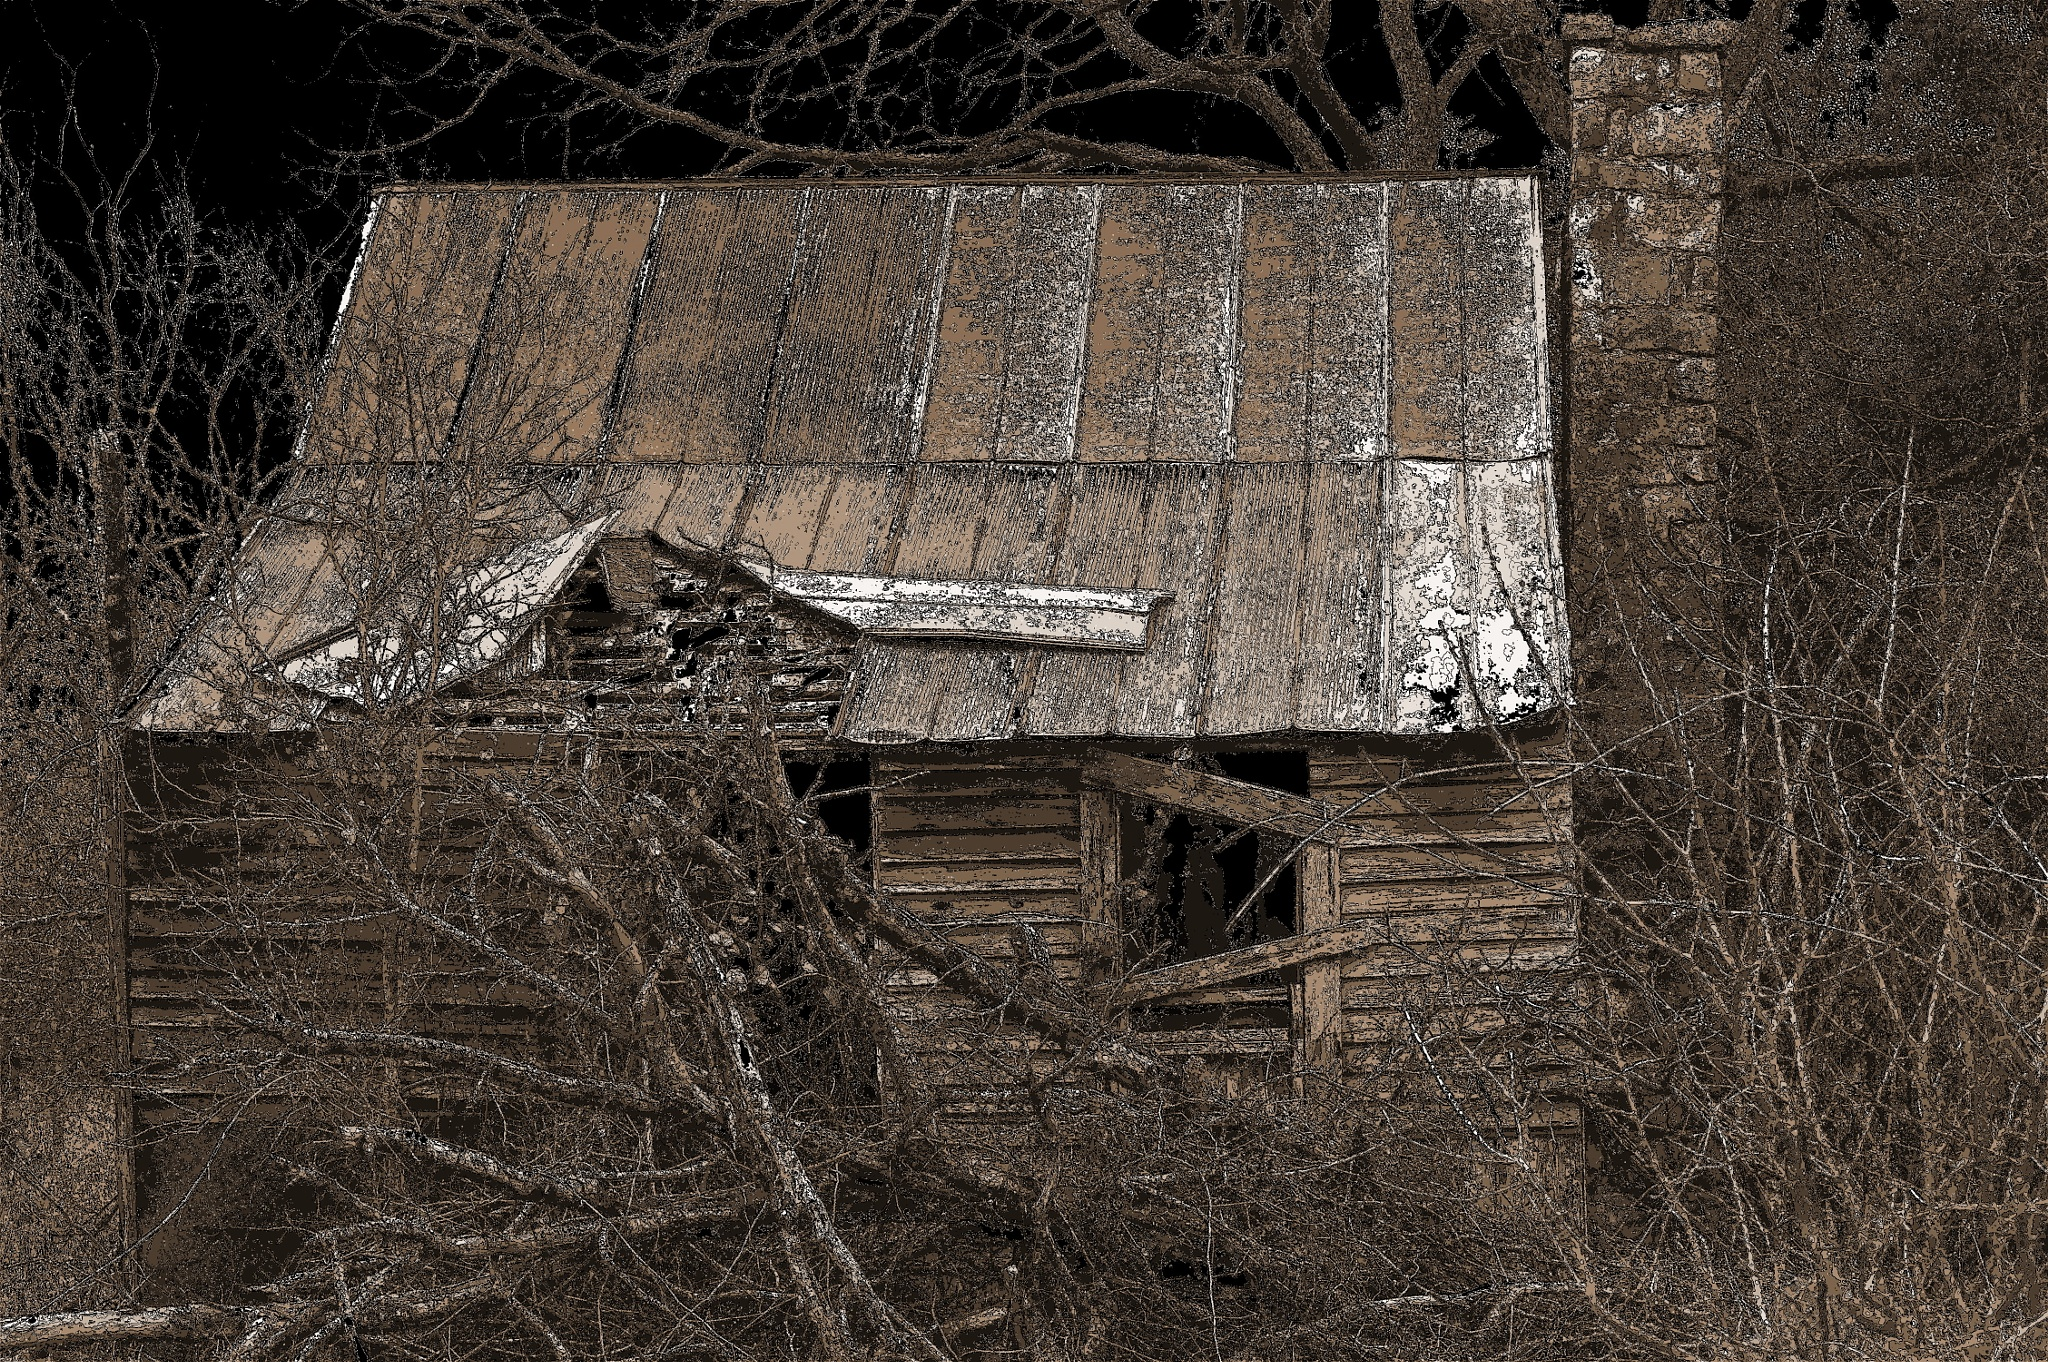 Old House Broken down by benito.floresjr